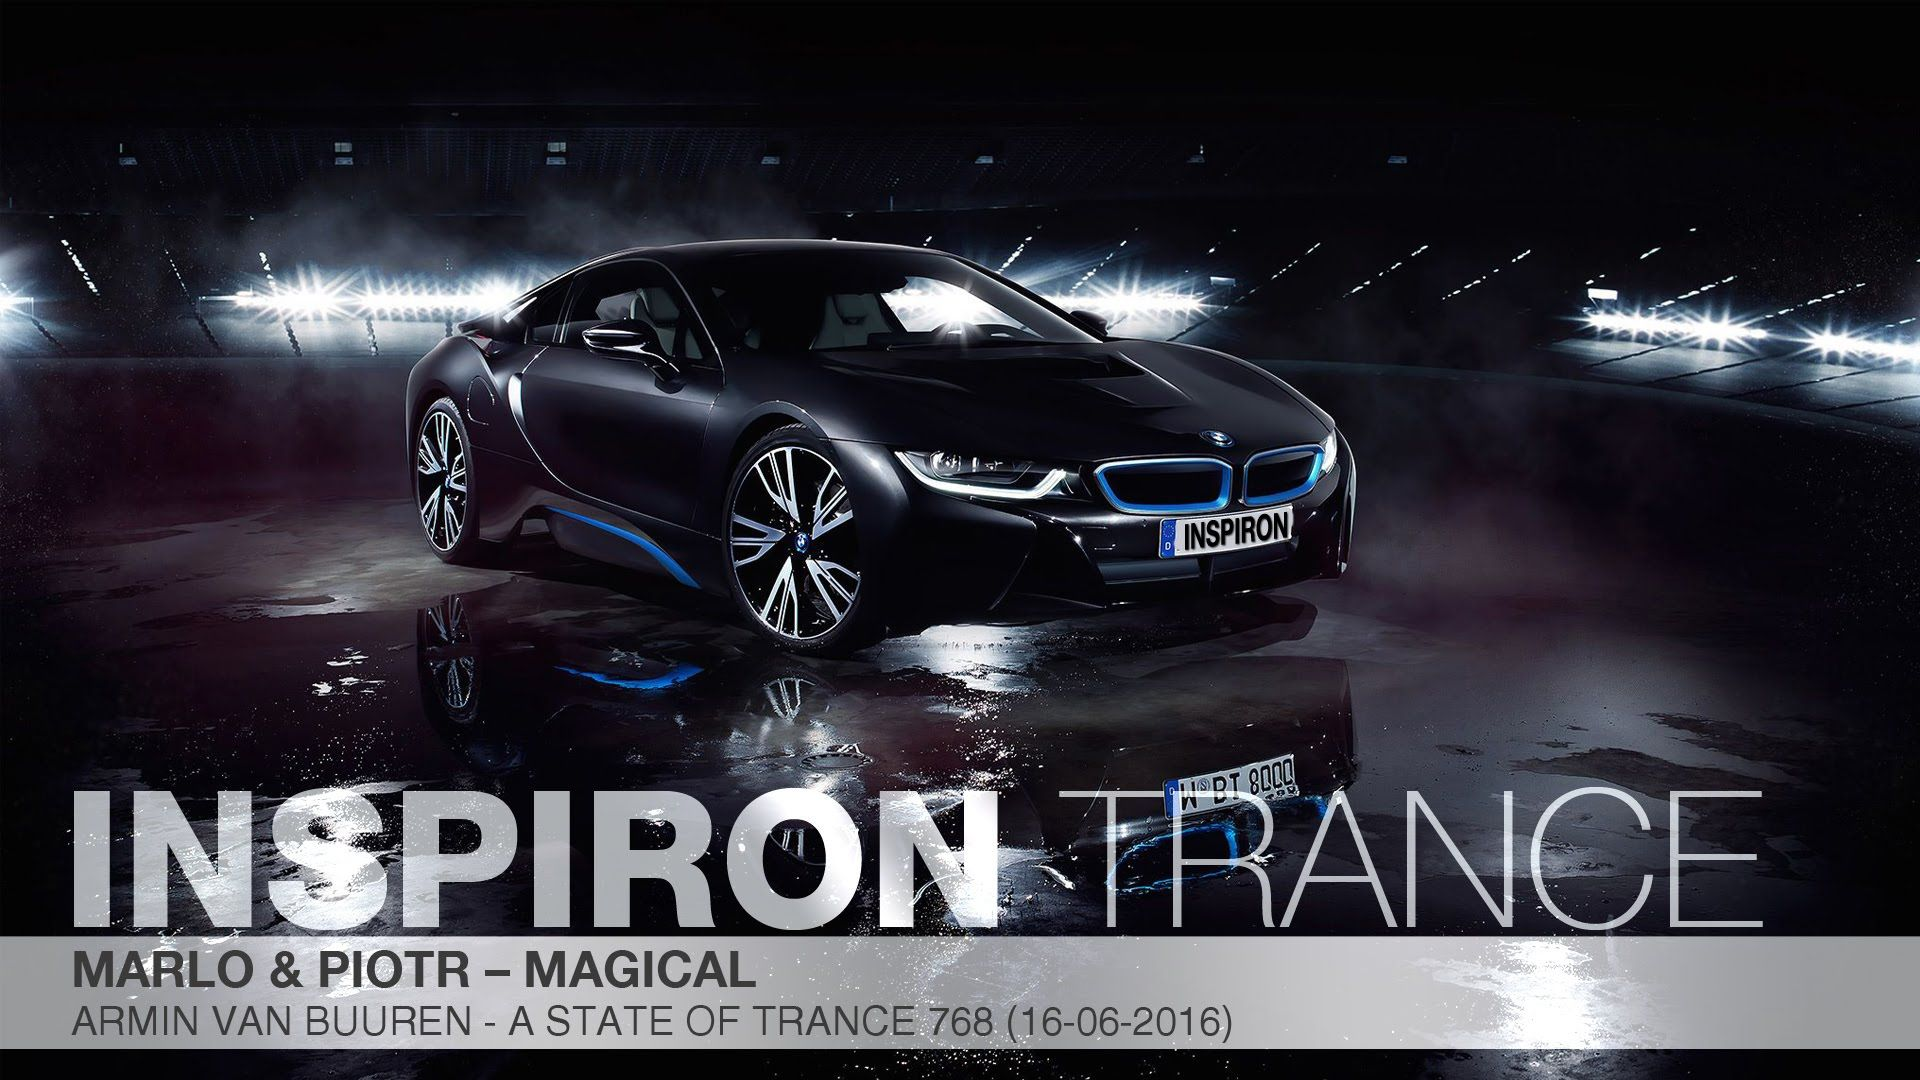 Marlo Piotr Magical Inspiron Trance Pinterest Cars Bmw